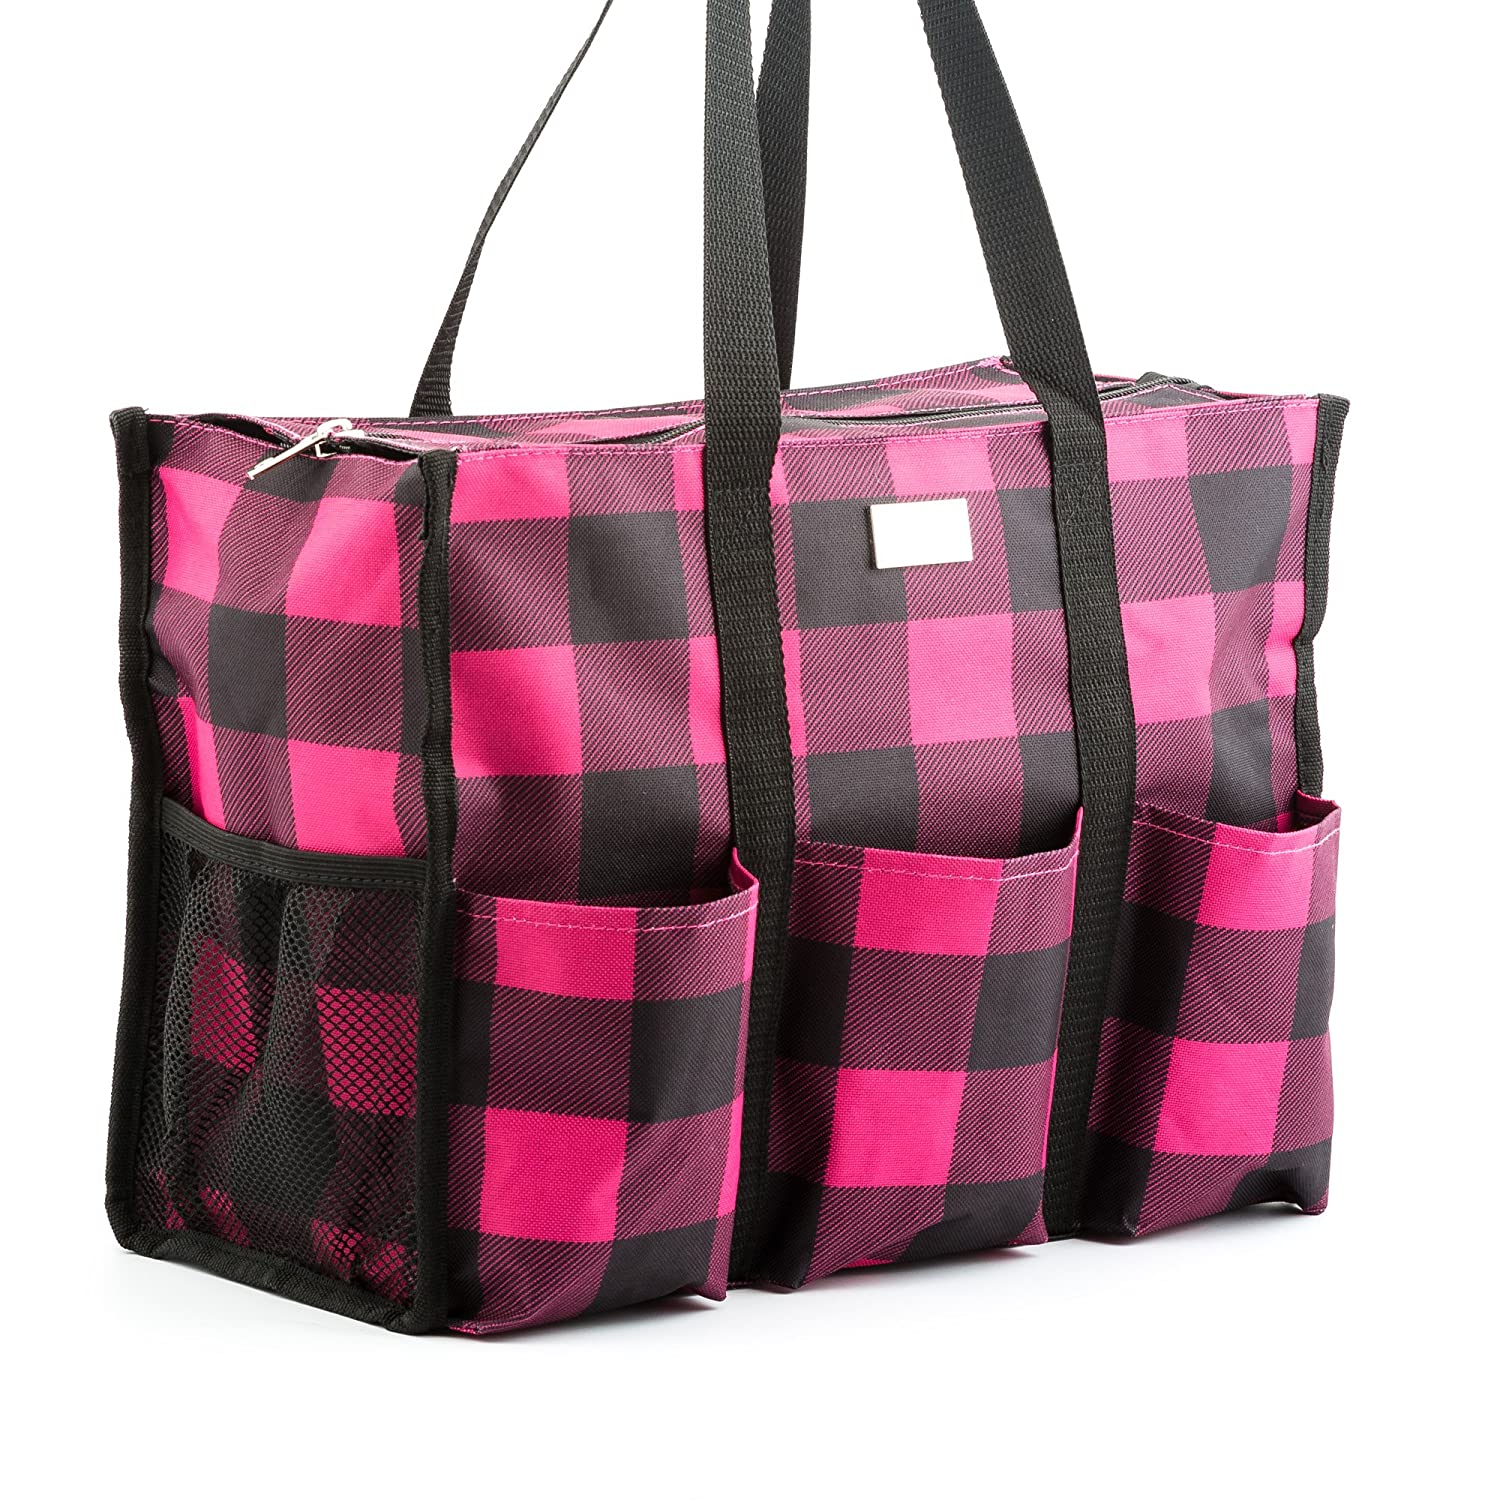 Pursetti Zip-Top Organizing Utility Tote Bag with Multiple Exterior & Interior Pockets for Working Women, Nurses, Teachers and Soccer Moms (Black Daisy) COMIN18JU065245